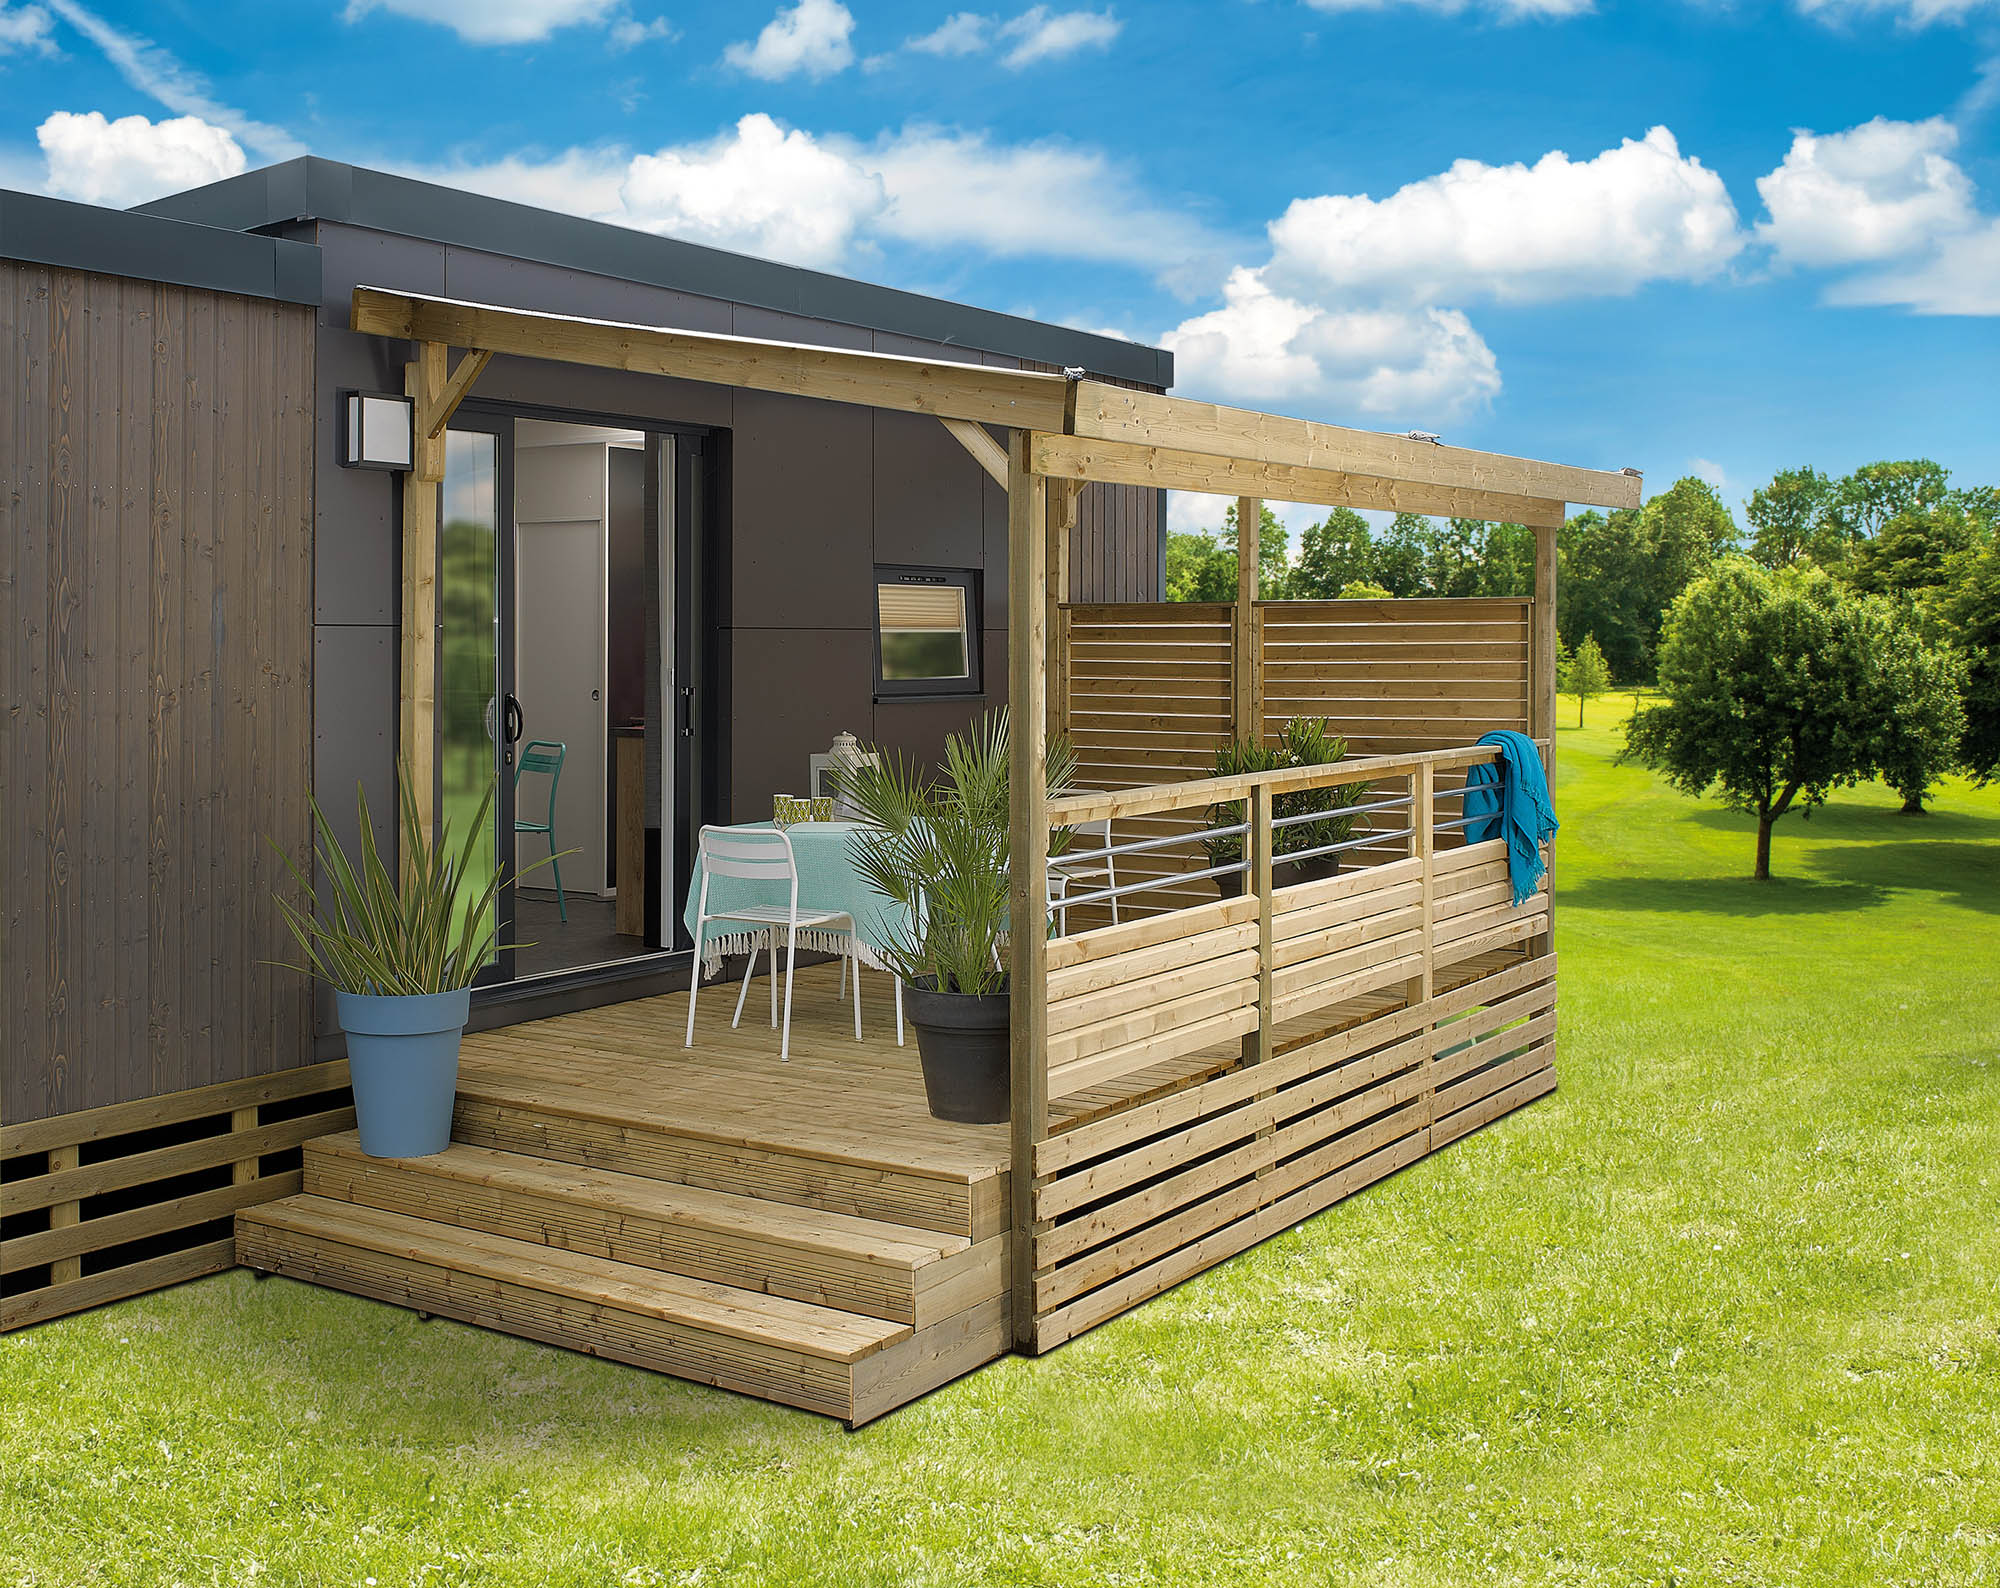 terrasse en bois couverte pour mobile home all inclusive 2748 lattes. Black Bedroom Furniture Sets. Home Design Ideas